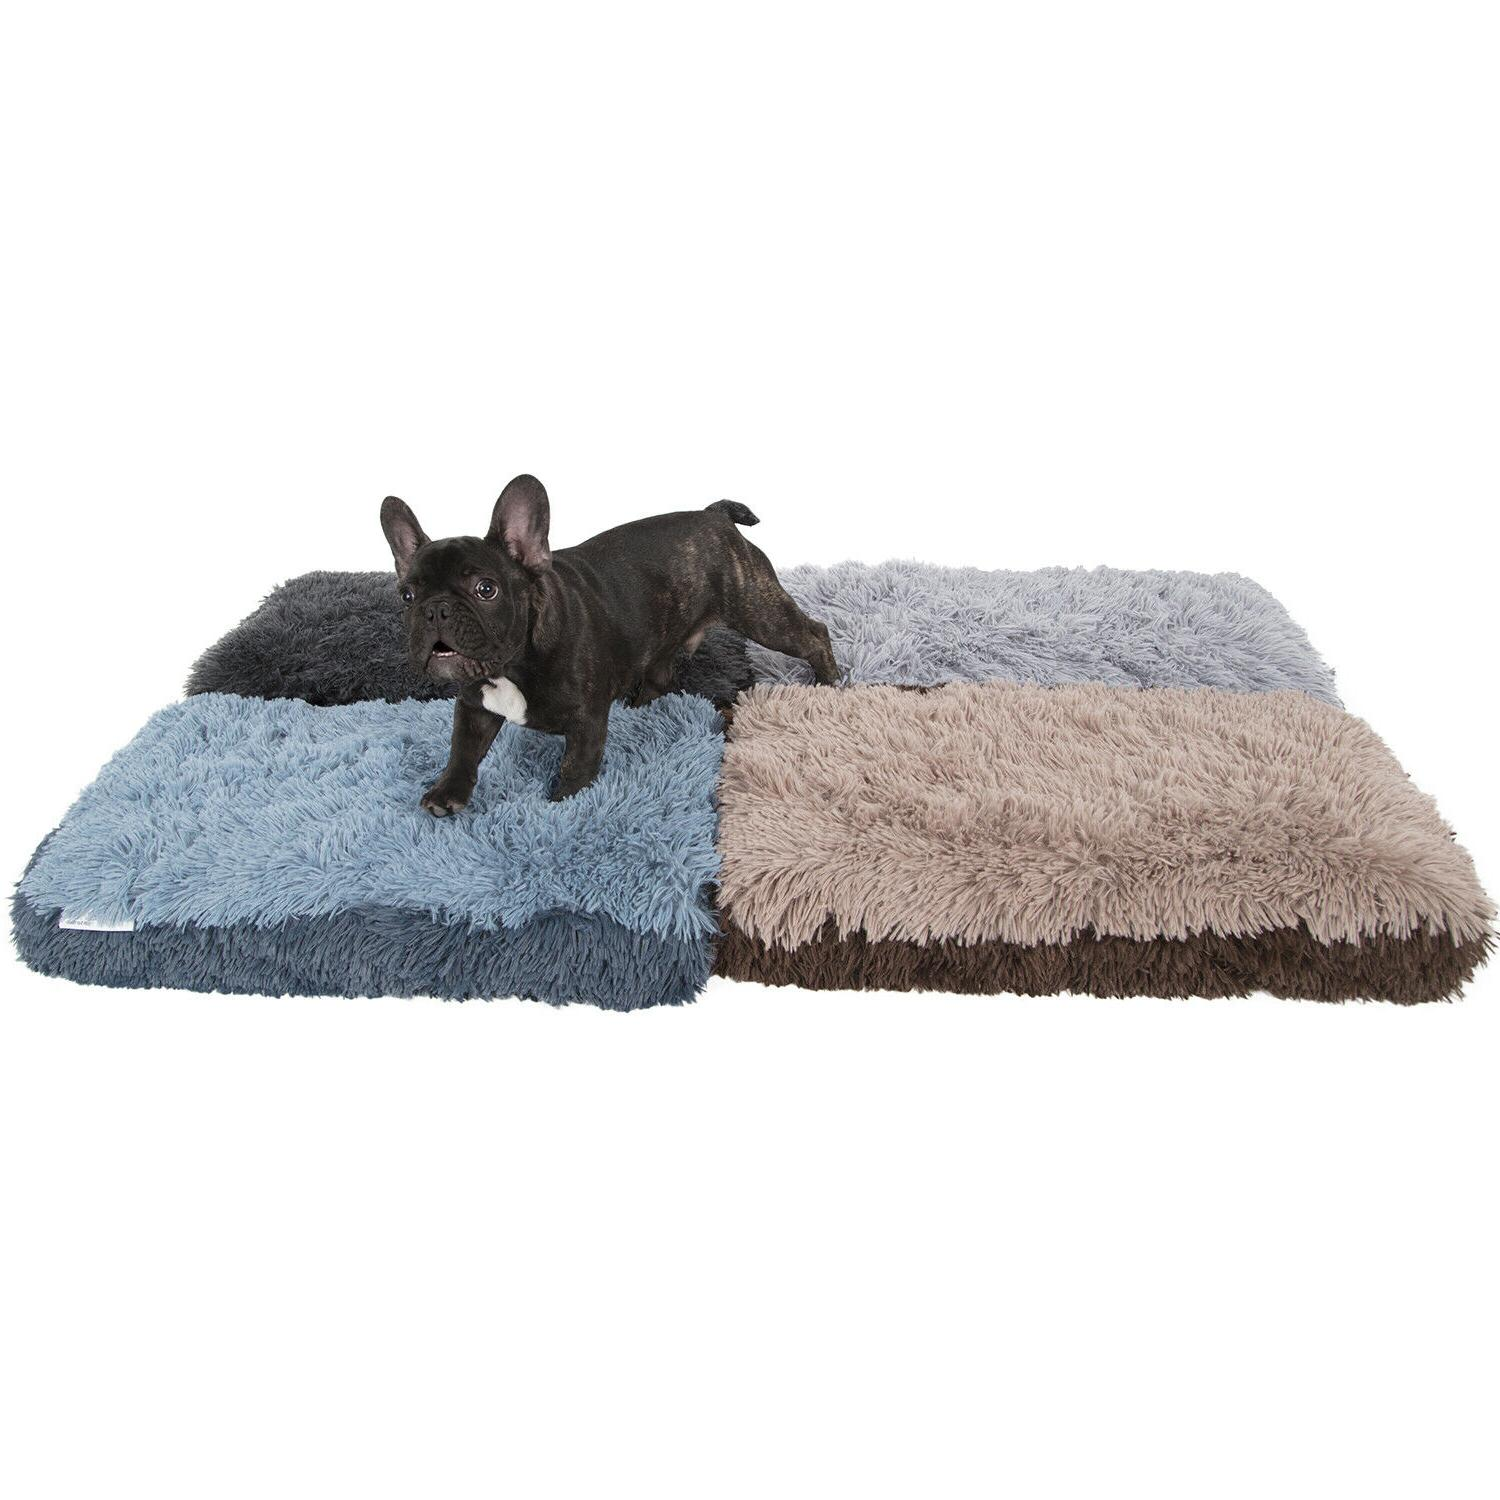 Dog Bedding for Crate